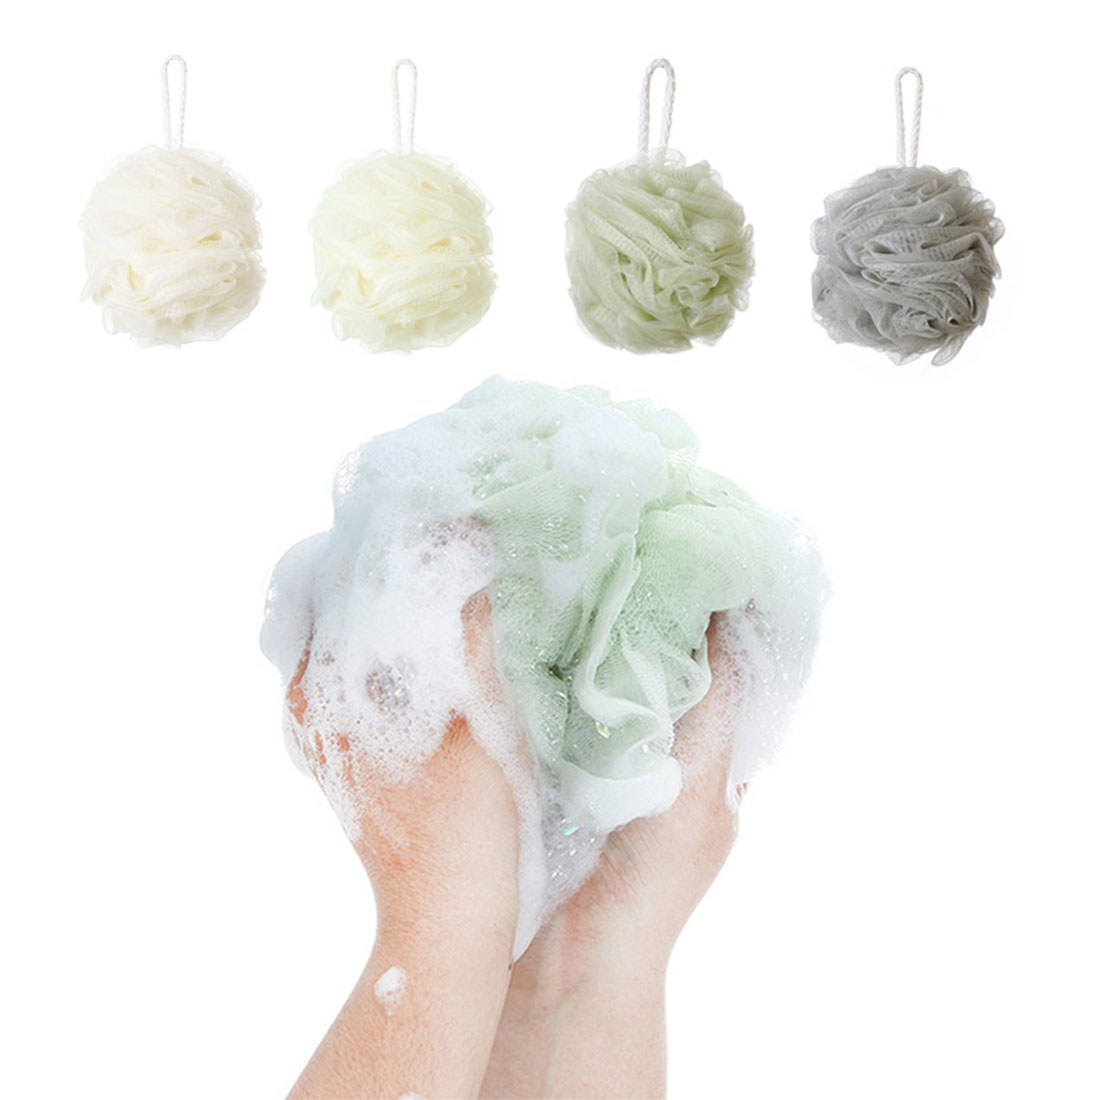 New 1PCS Random Color bath ball bathsite bath tubs Cool ball bath towel scrubber Body cleaning Mesh Shower wash Sponge product